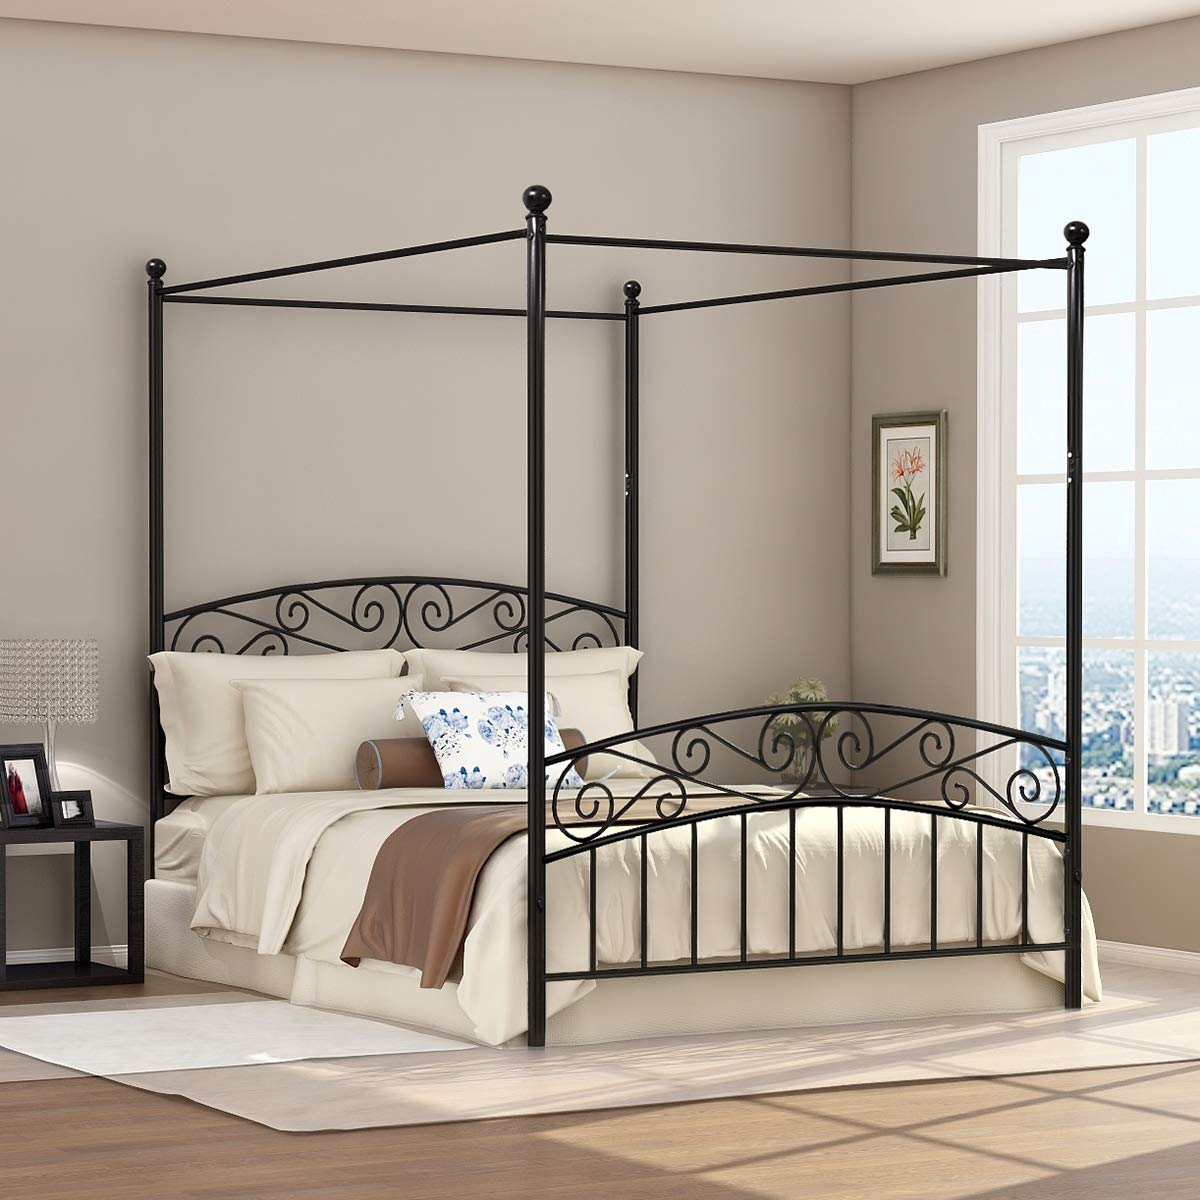 Deluxe Design Queen Size Metal Canopy Bed Frame with Ornate European Style Headboard & Footboard Sturdy Black Steel Holds 660lbs Perfectly Fits Your Mattress Easy DIY Assembly All Parts Included by DUMEE